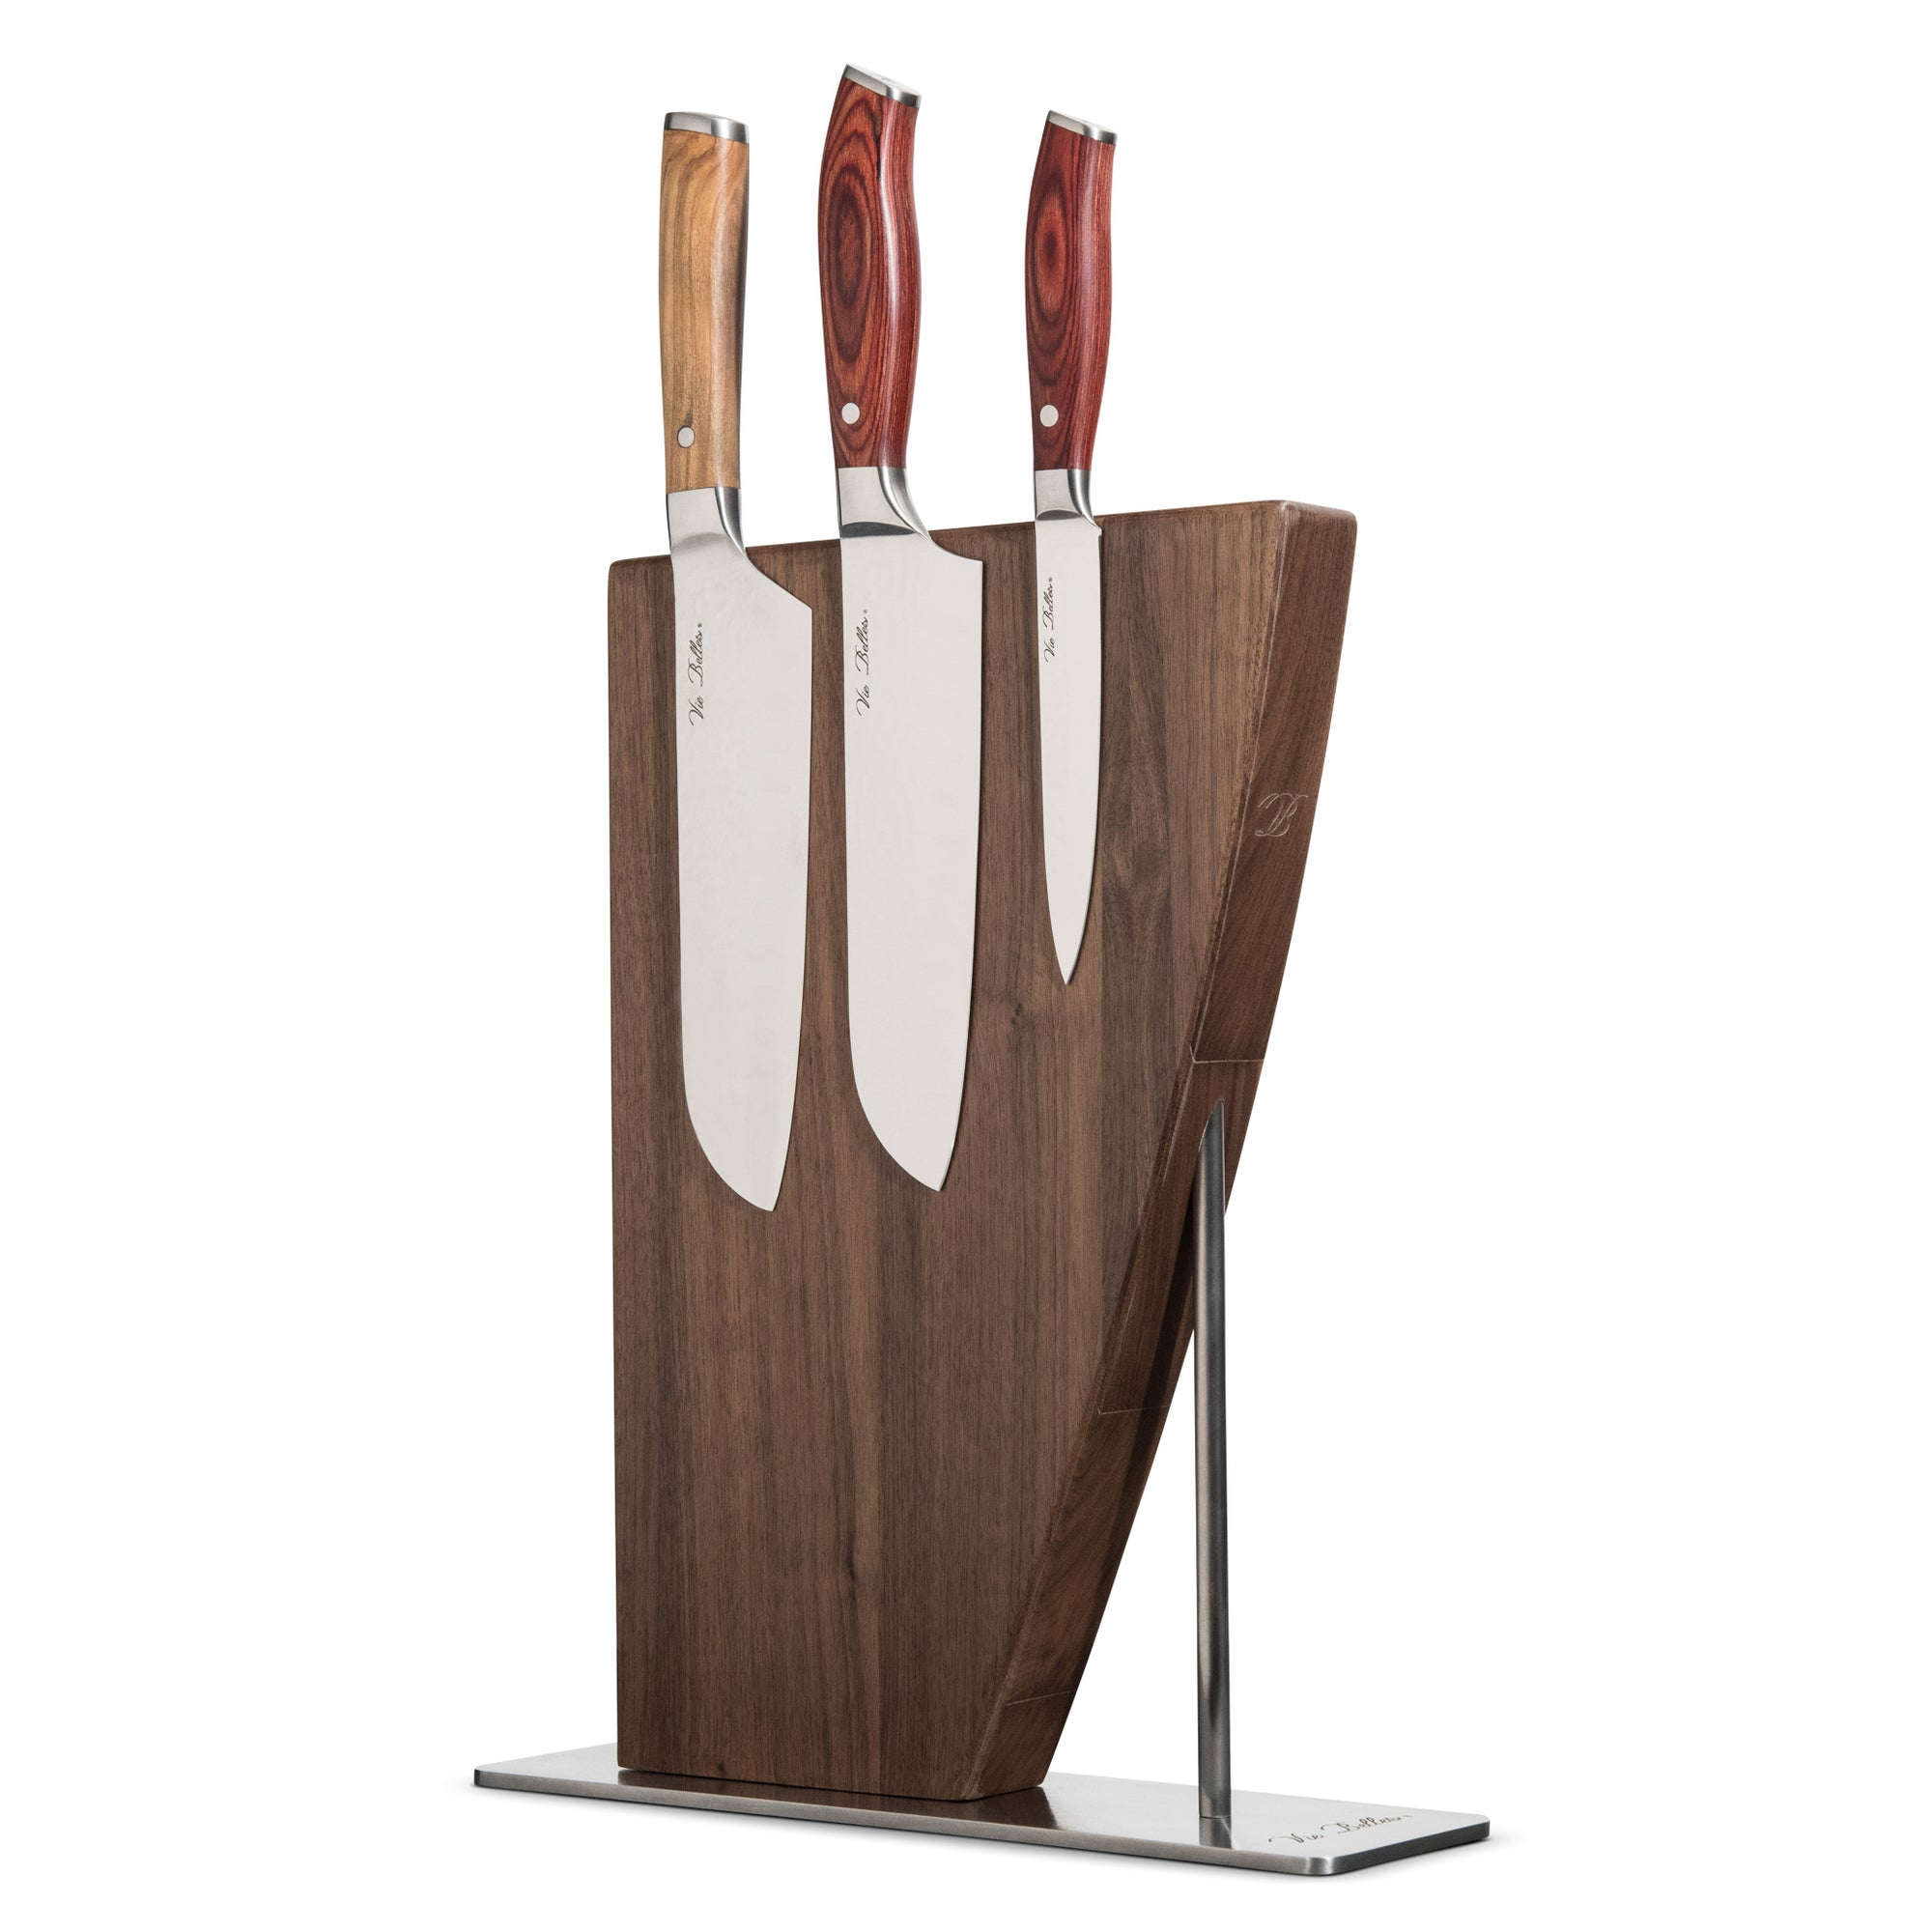 How to Care for Your Knife Block?